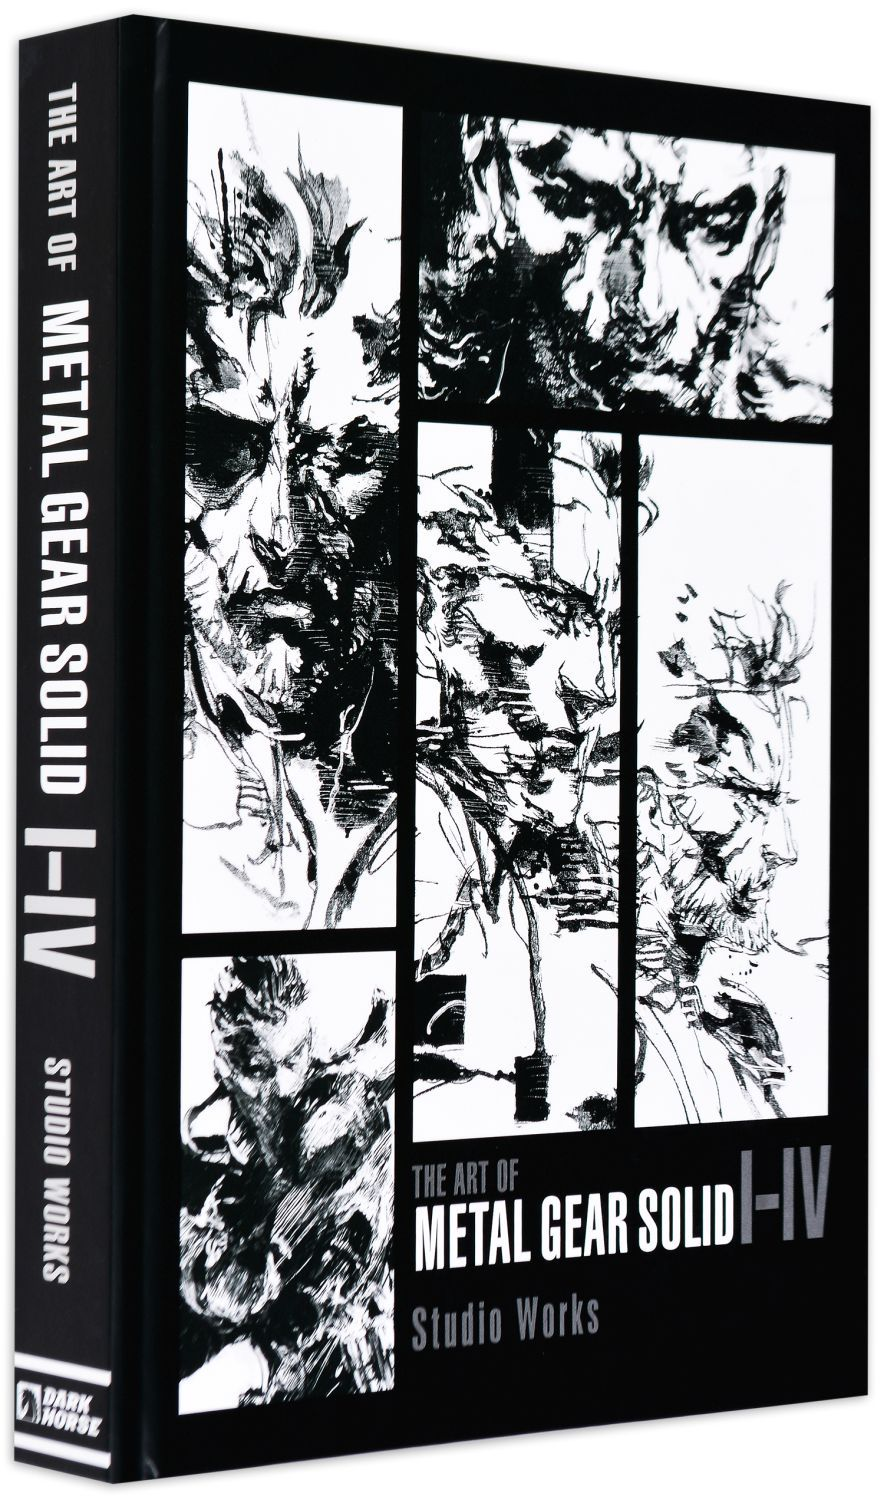 The Art of Metal Gear Solid I-IV (Collectable slipcase Hardcover) - 9